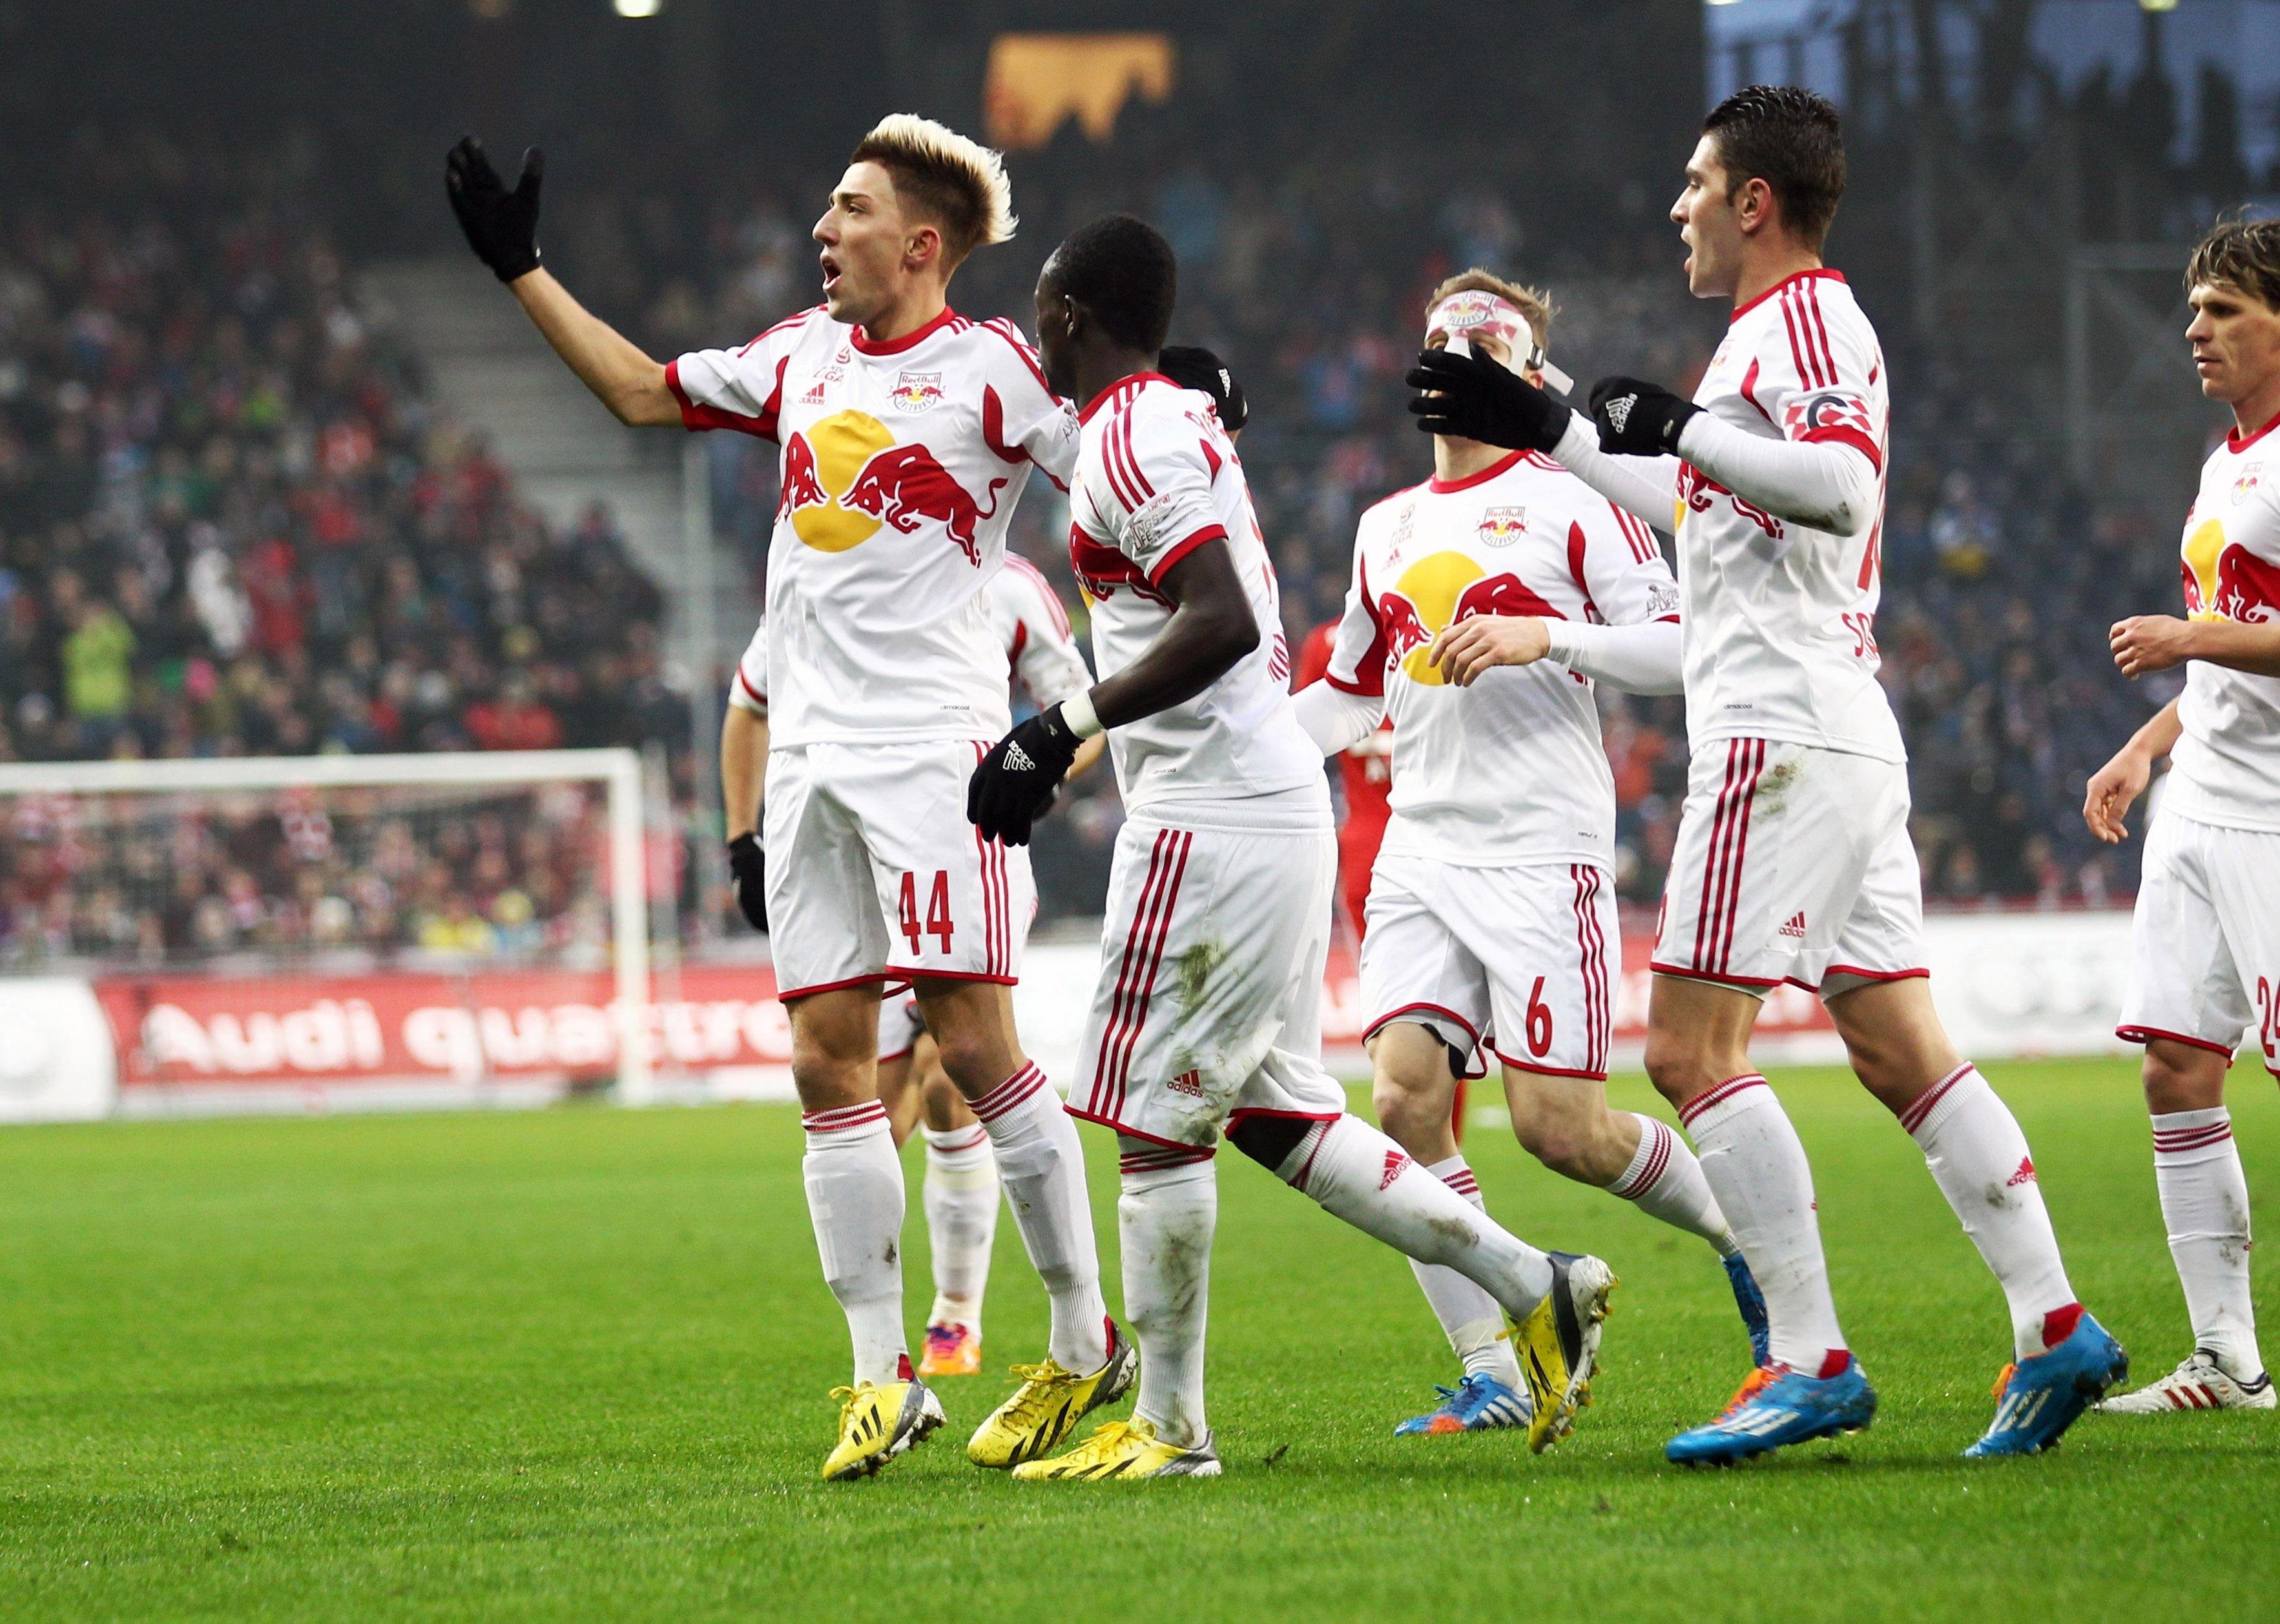 GEPA-18011468067 - SALZBURG,AUSTRIA,18.JAN.14 - SOCCER - tipp3 Bundesliga powered by T-Mobile, DFL, 1. Deutsche Bundesliga, Red Bull Salzburg vs FC Bayern Muenchen, friendly match. Image shows the rejoicing of Kevin Kampl, Sadio Mane and Jonatan Soriano (RBS). Photo: GEPA pictures/ Felix Roittner - For editorial use only. Image is free of charge.